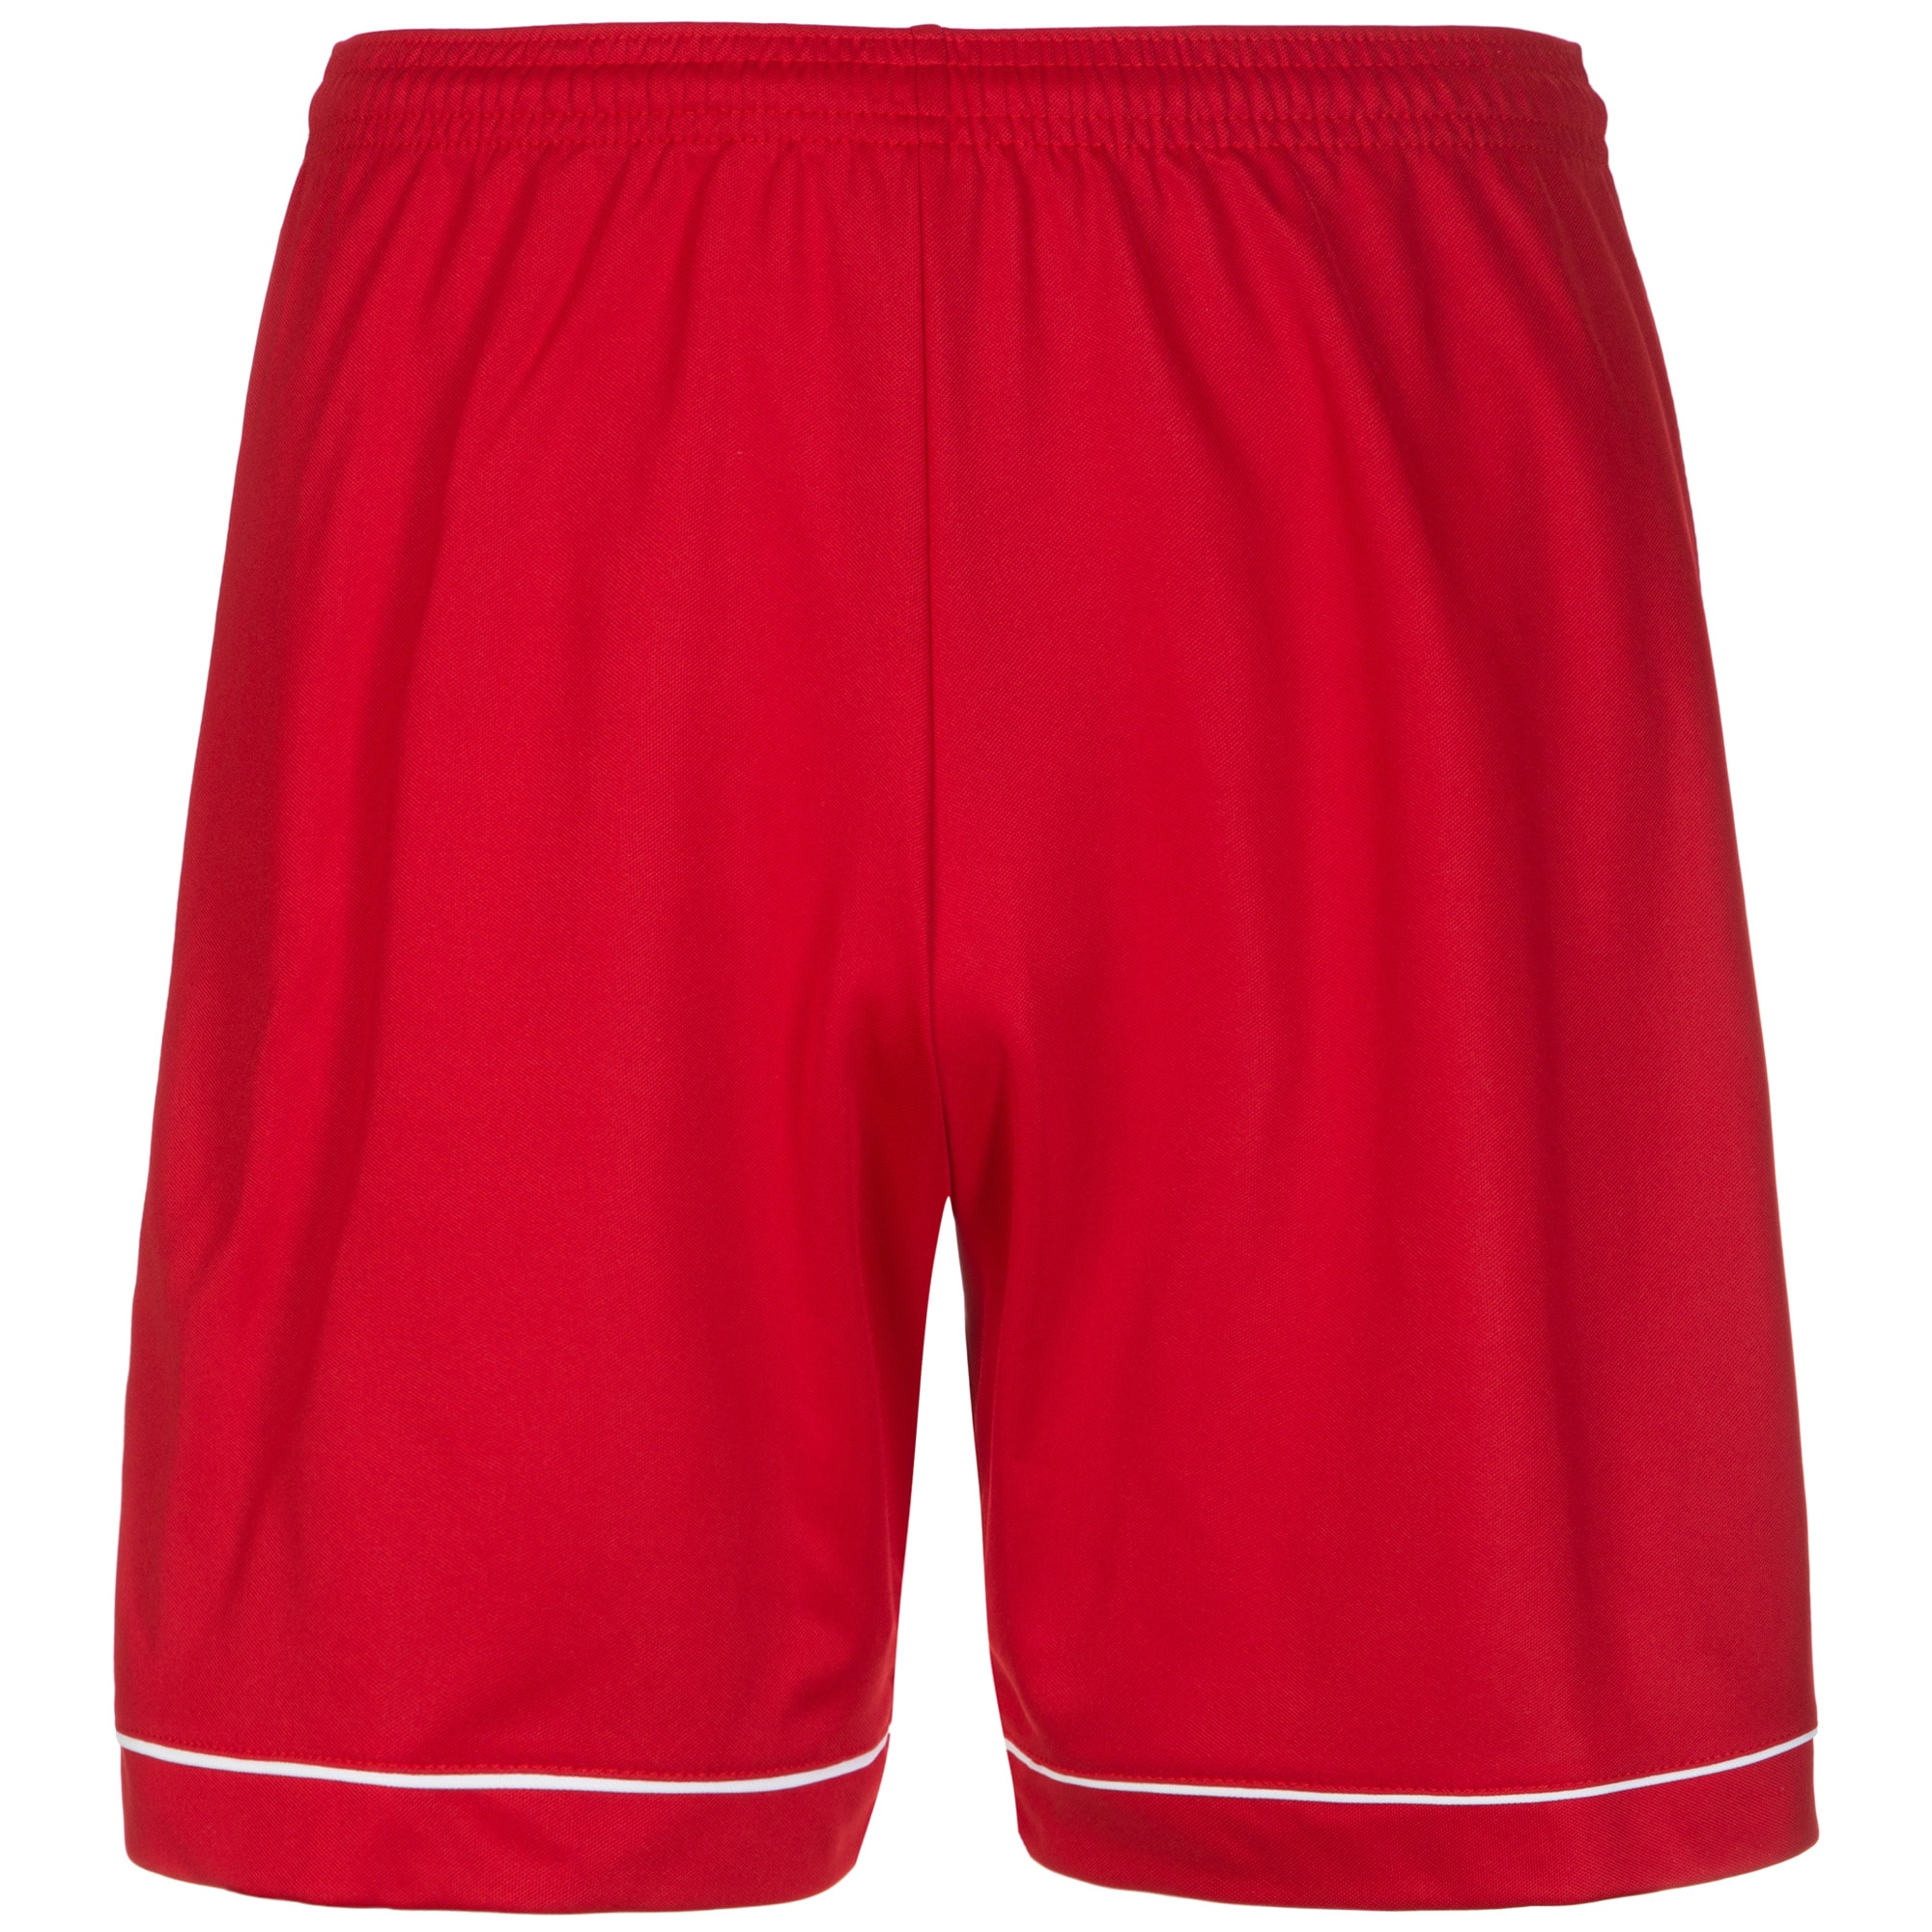 Shorts 'Squadra 17' | Bekleidung > Shorts & Bermudas > Shorts | adidas performance